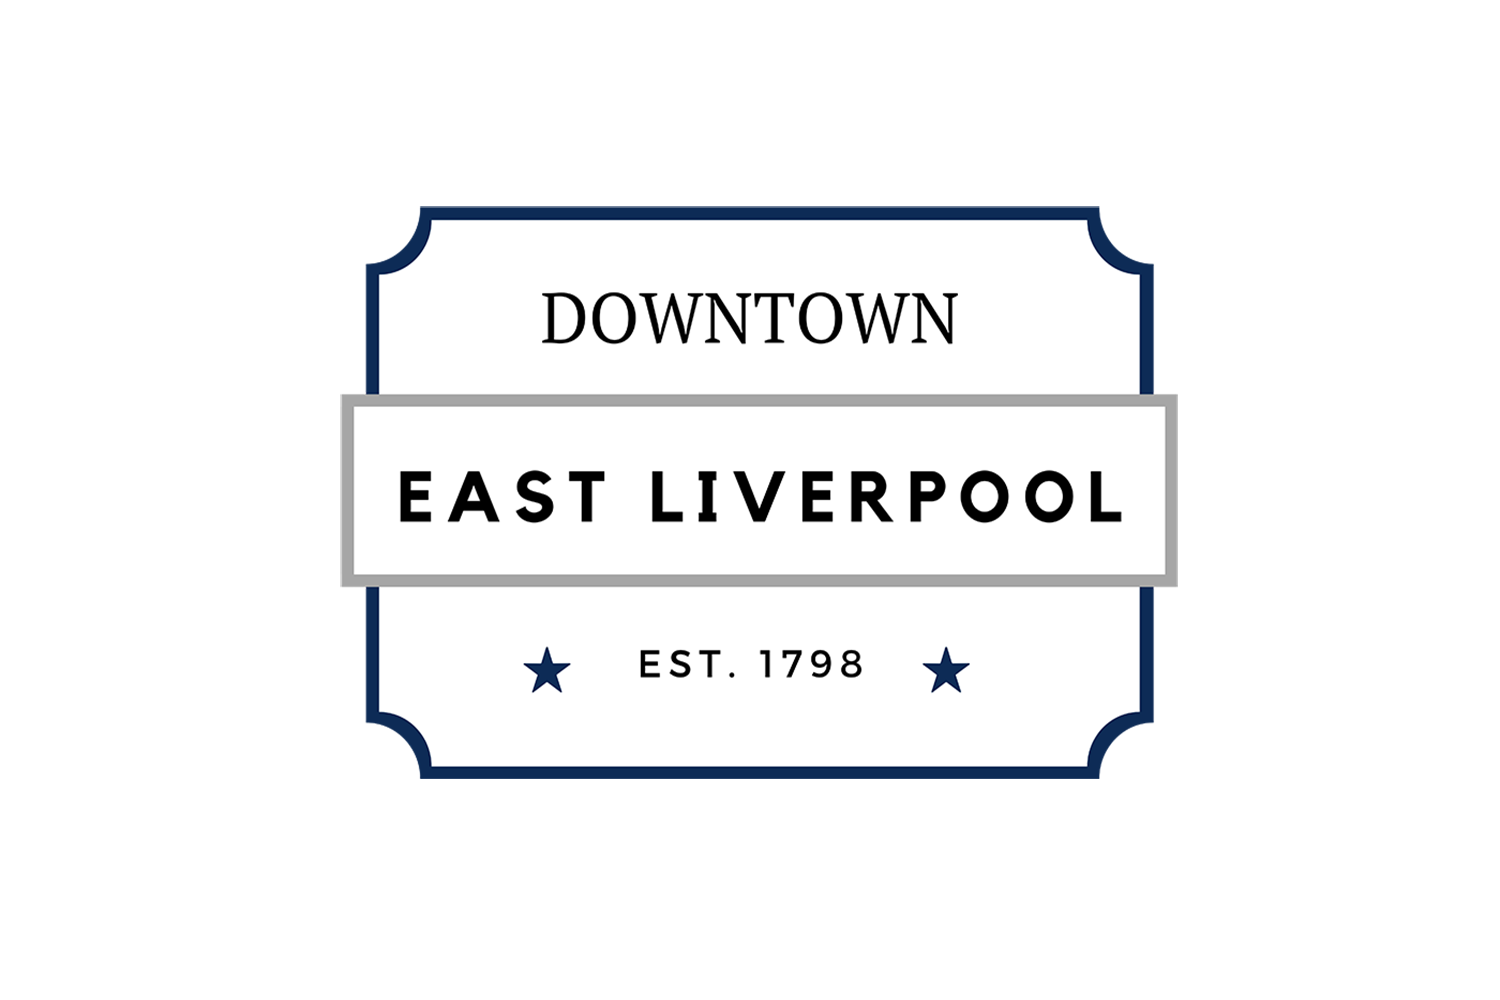 The official logo of Downtown East Liverpool by the ELCPR, in East Liverpool Ohio.